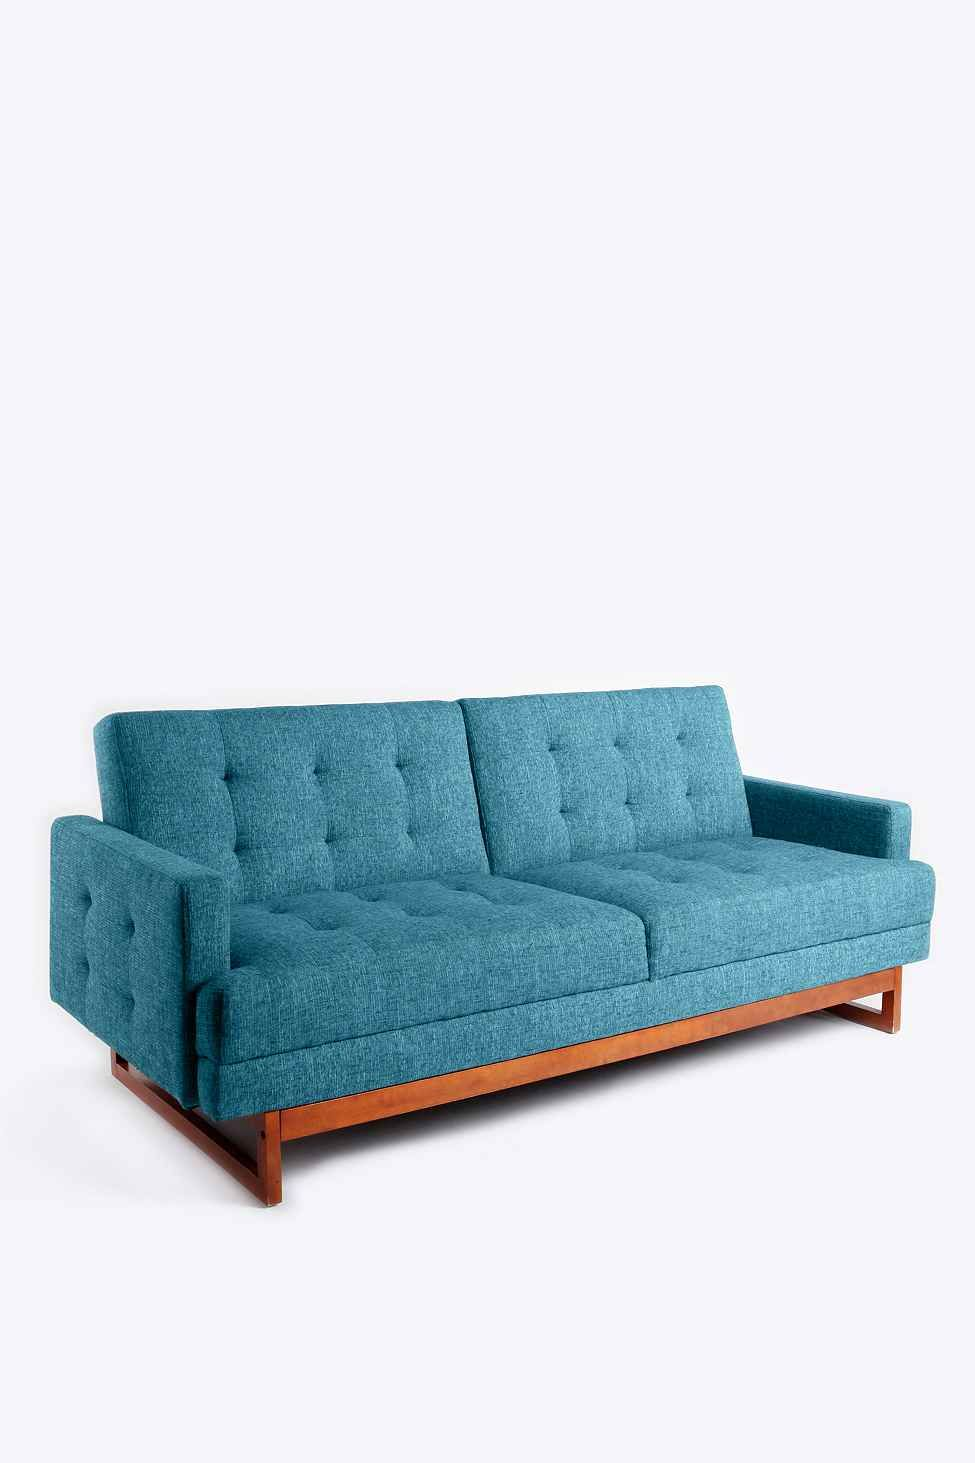 Either Or Sofa in Turquoise